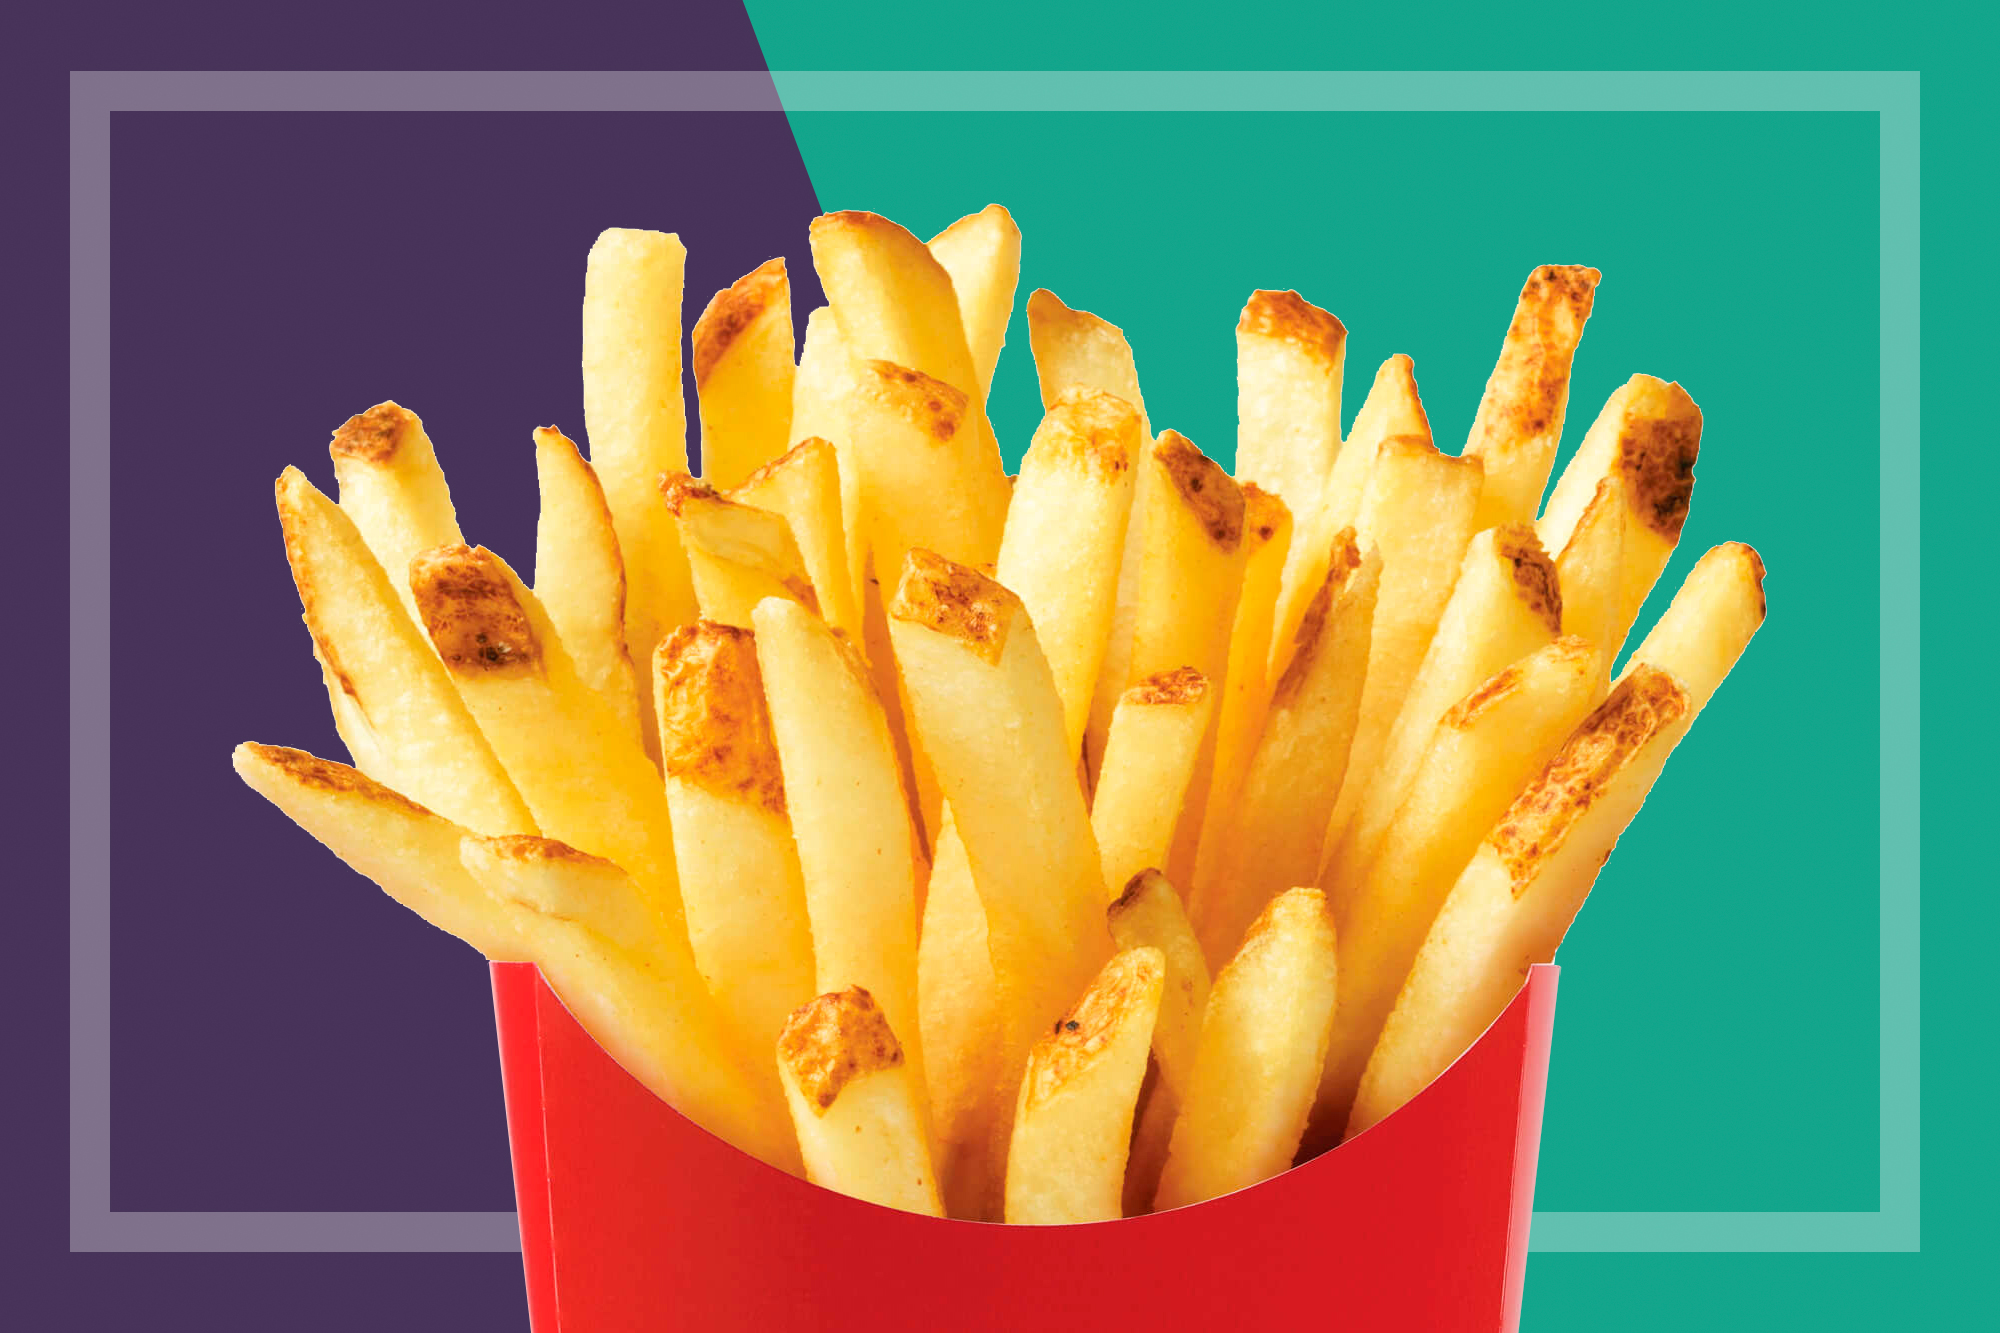 close-up of Wendy's fries